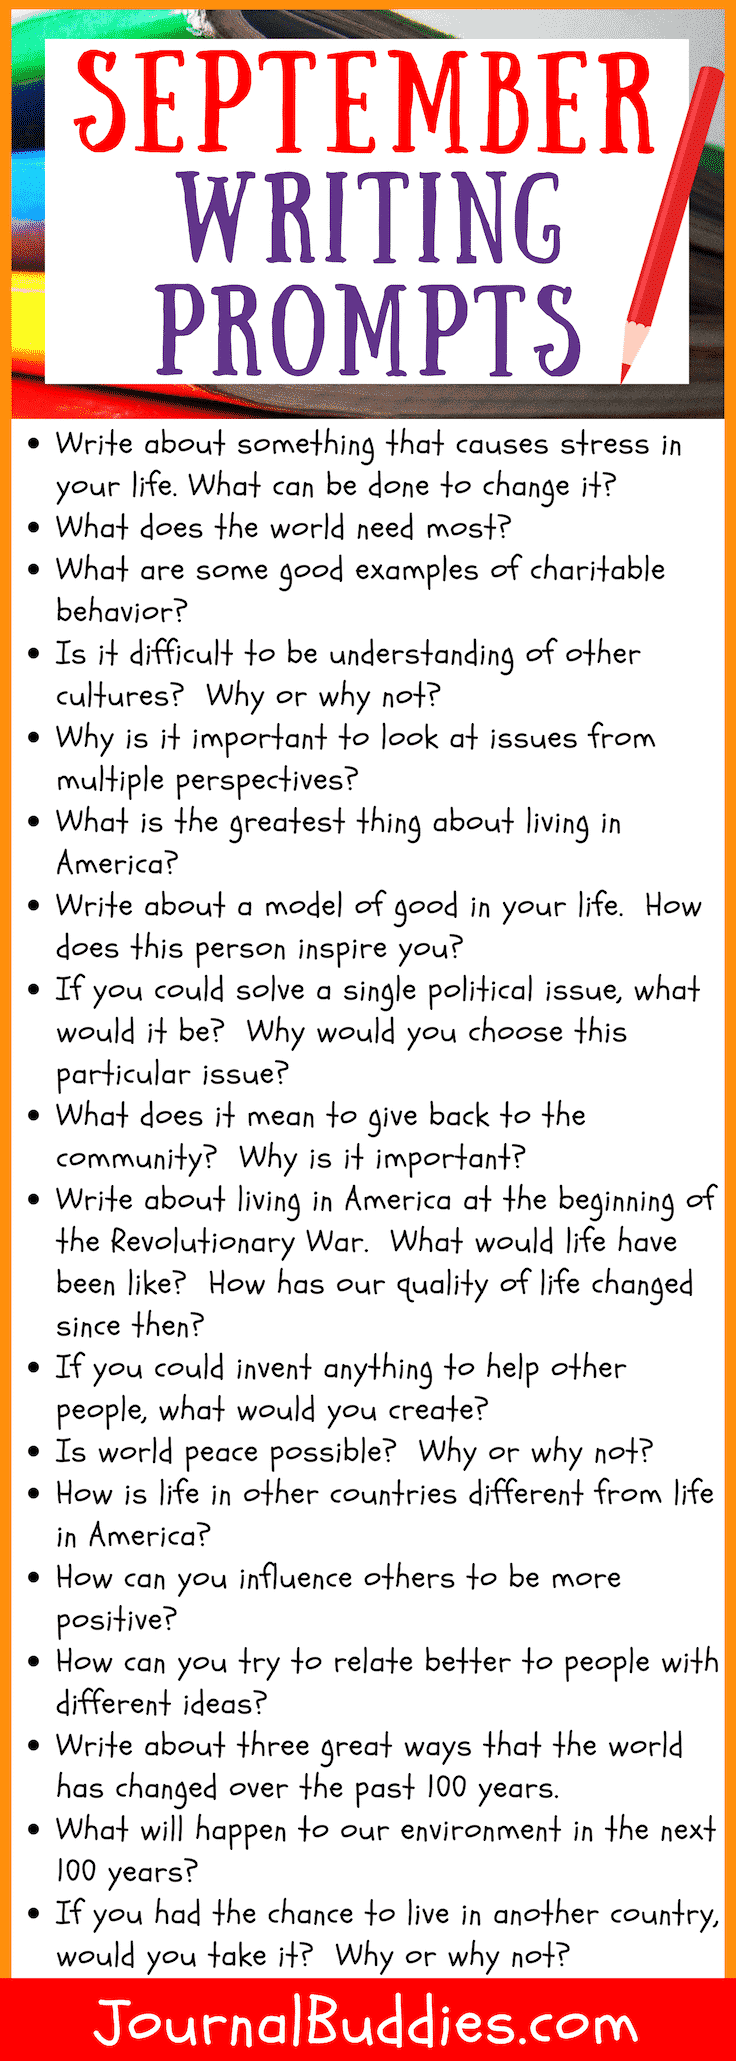 Use these journal prompts to teach students about important world issues from a lens of positivity.